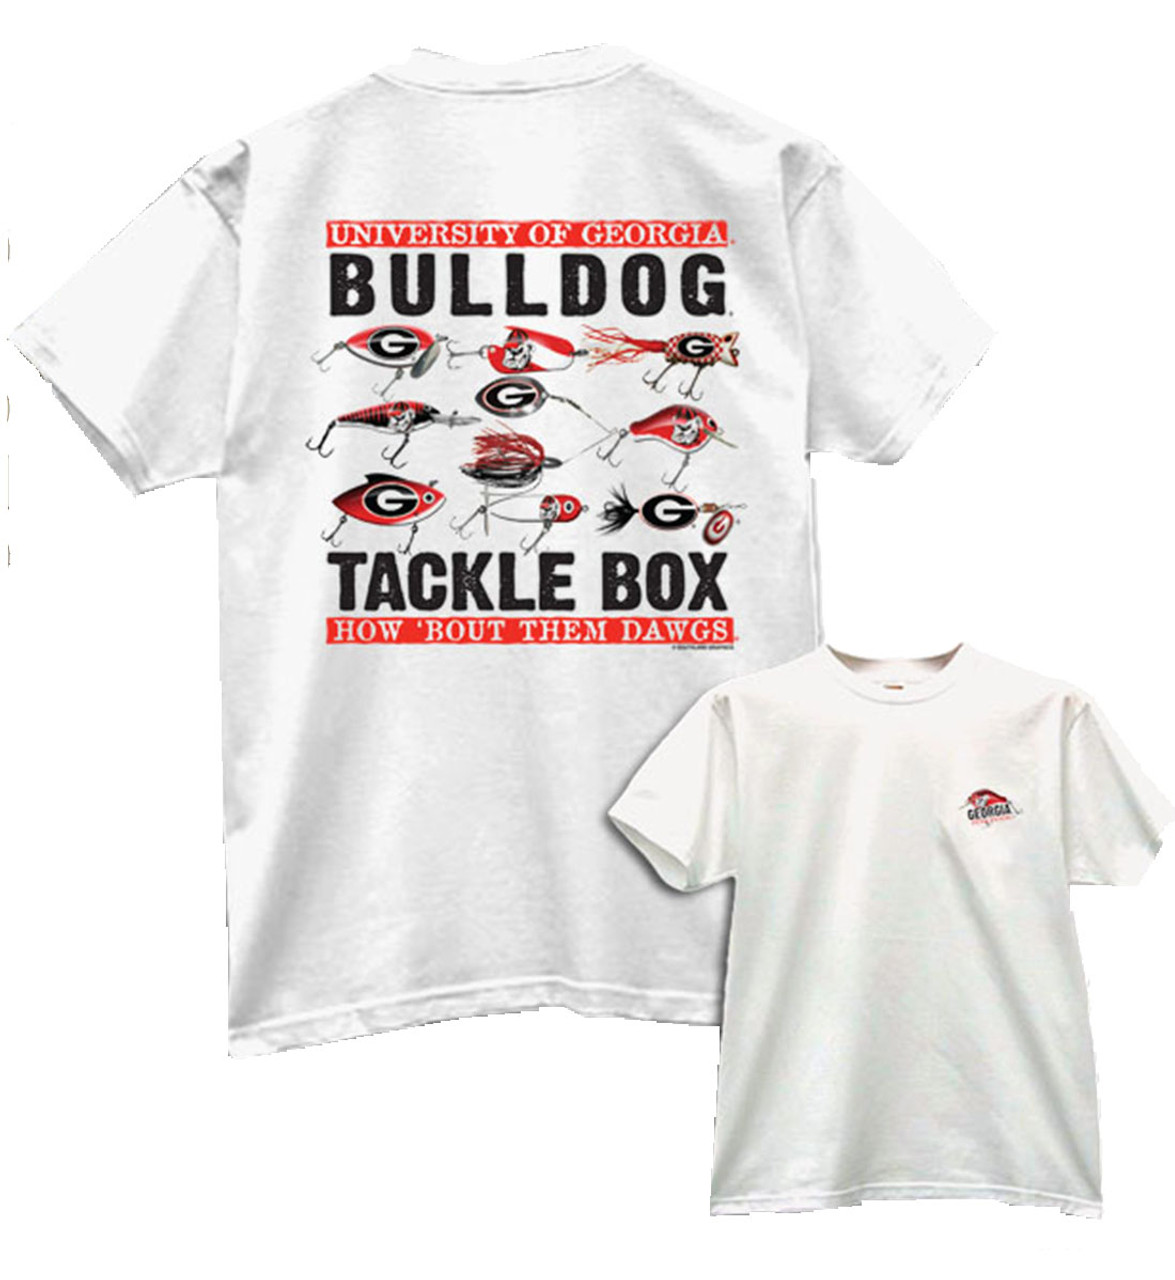 5149ab17 University Of Georgia Bulldogs Tackle Box T-shirt - Trenz Shirt Company